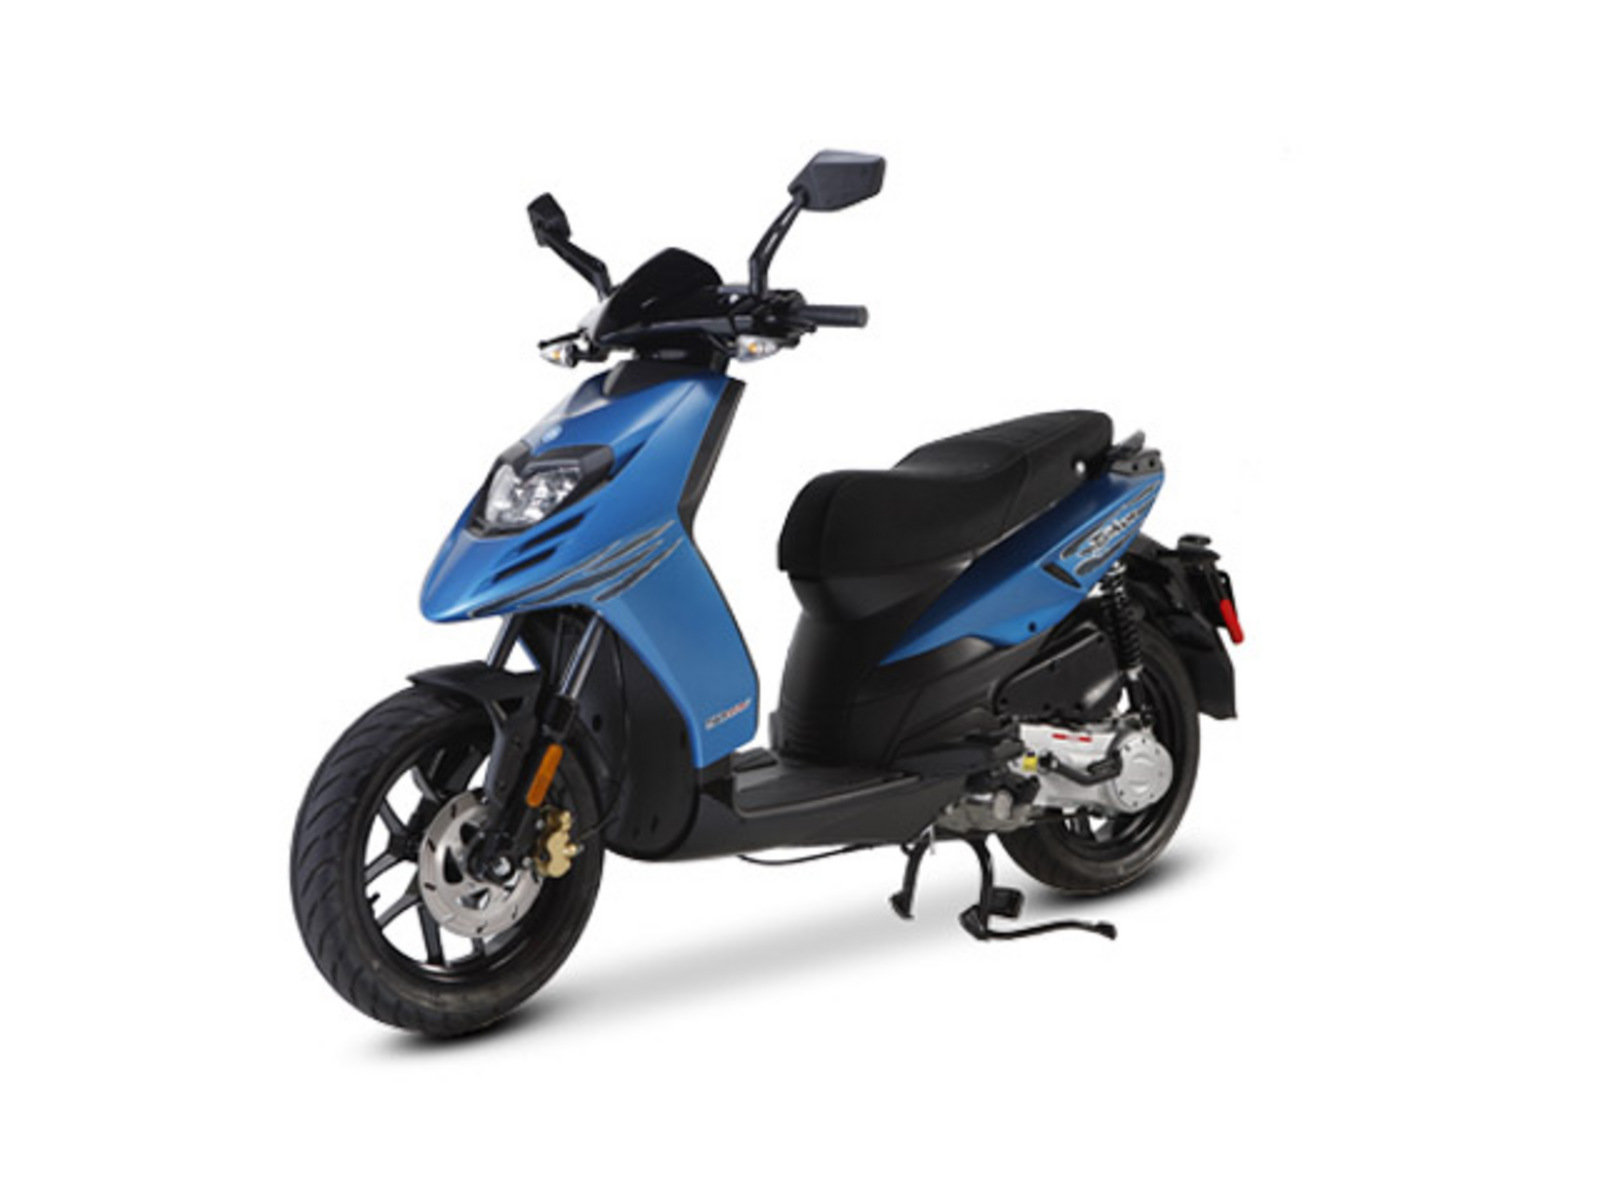 2014 Piaggio Typhoon 50 Review  Top Speed